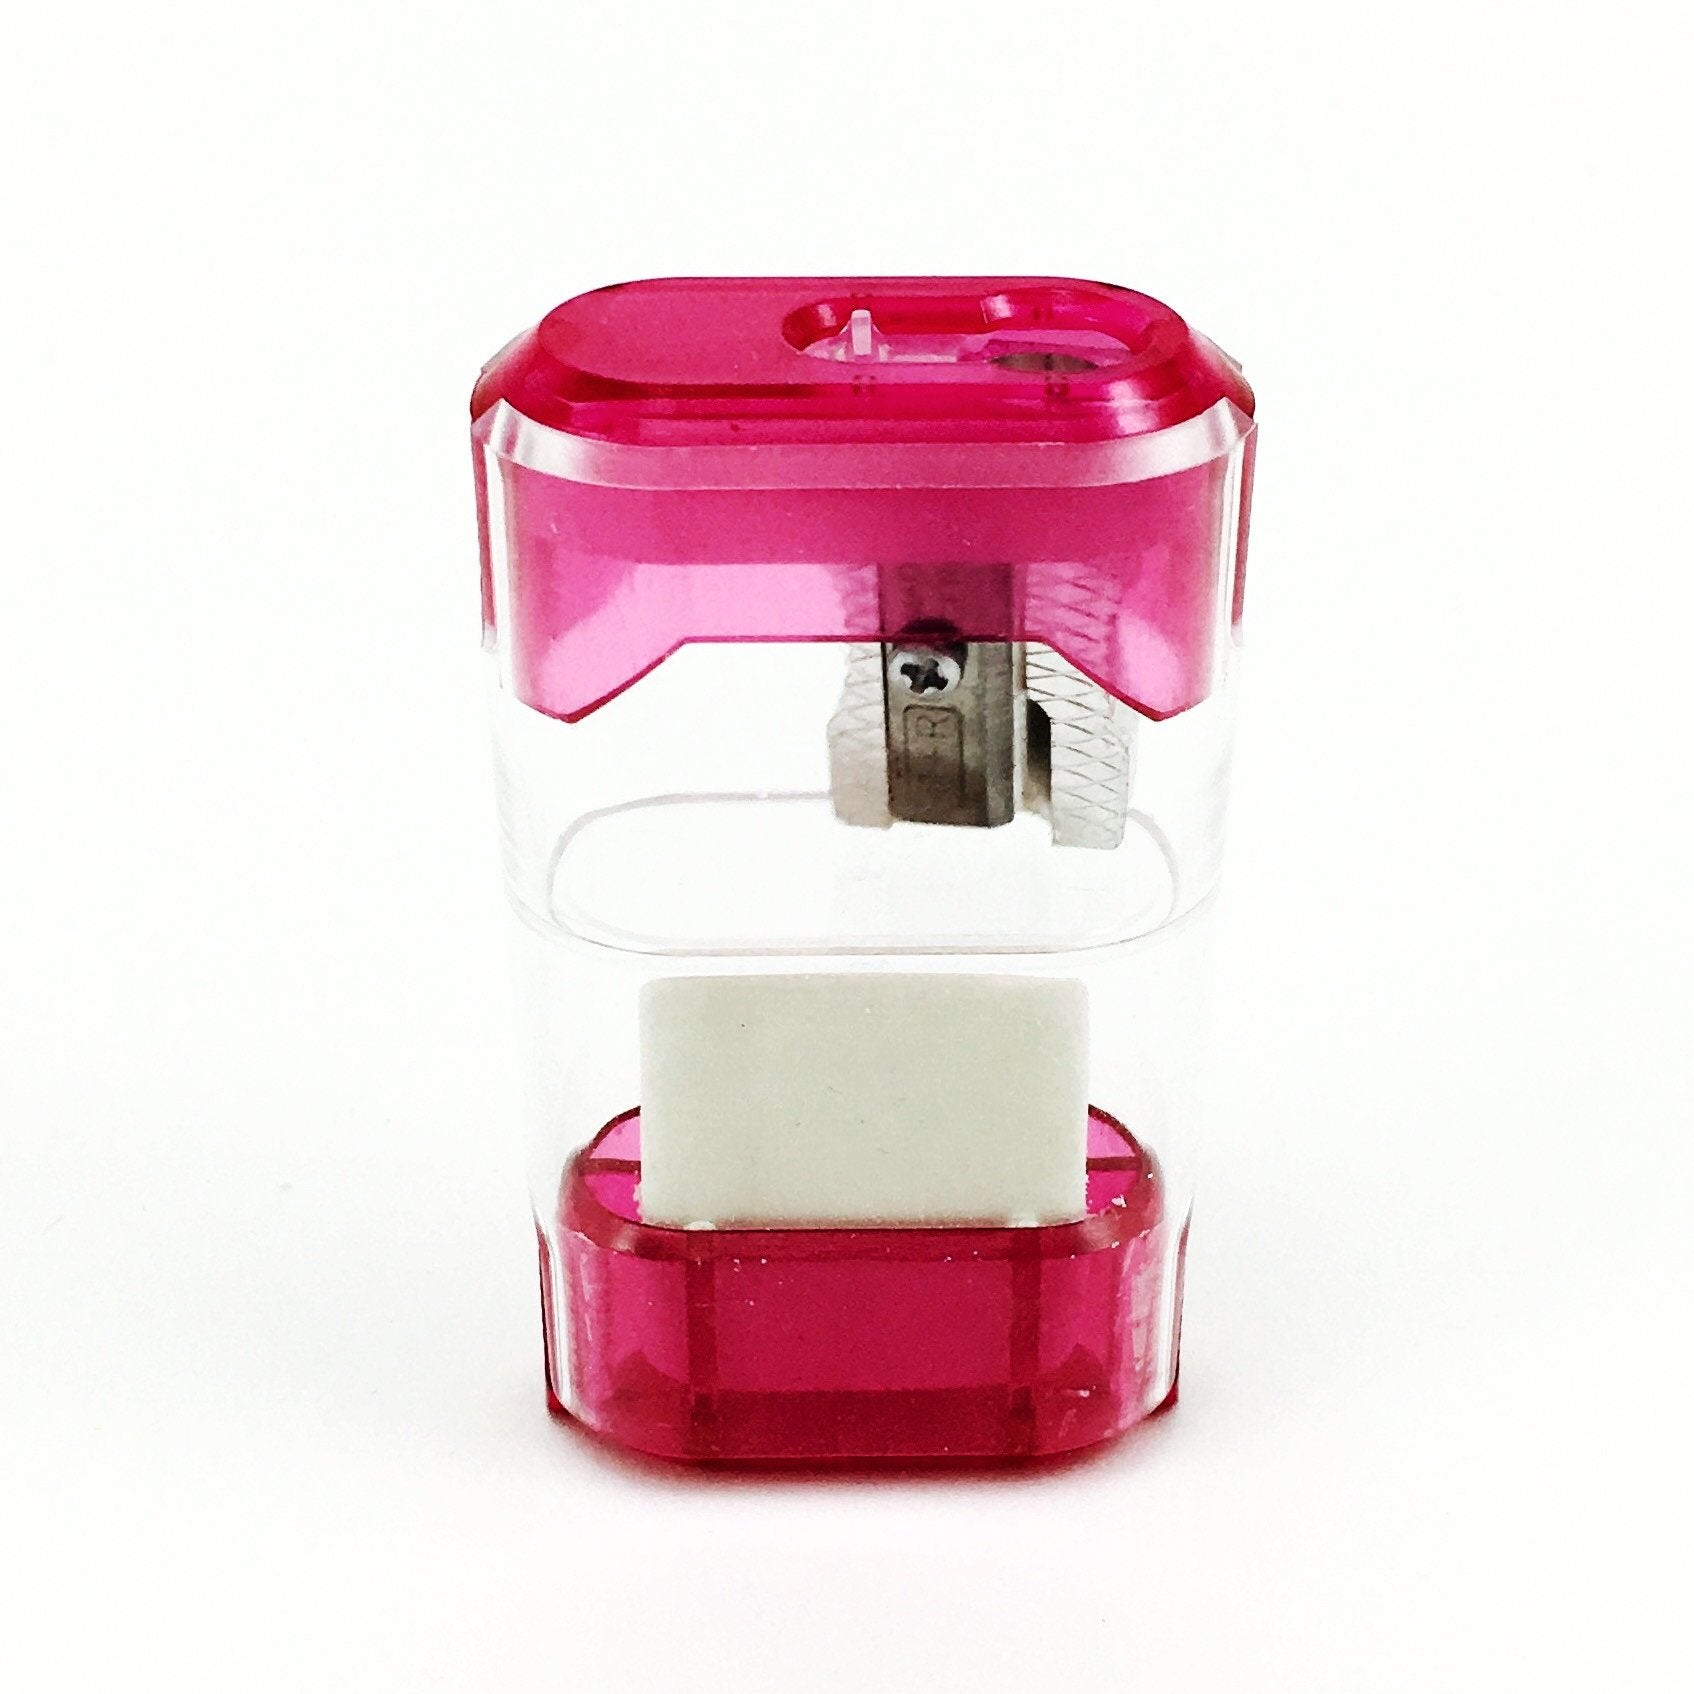 M+R Dual Sharpener and Eraser - Pink by M+R - K. A. Artist Shop